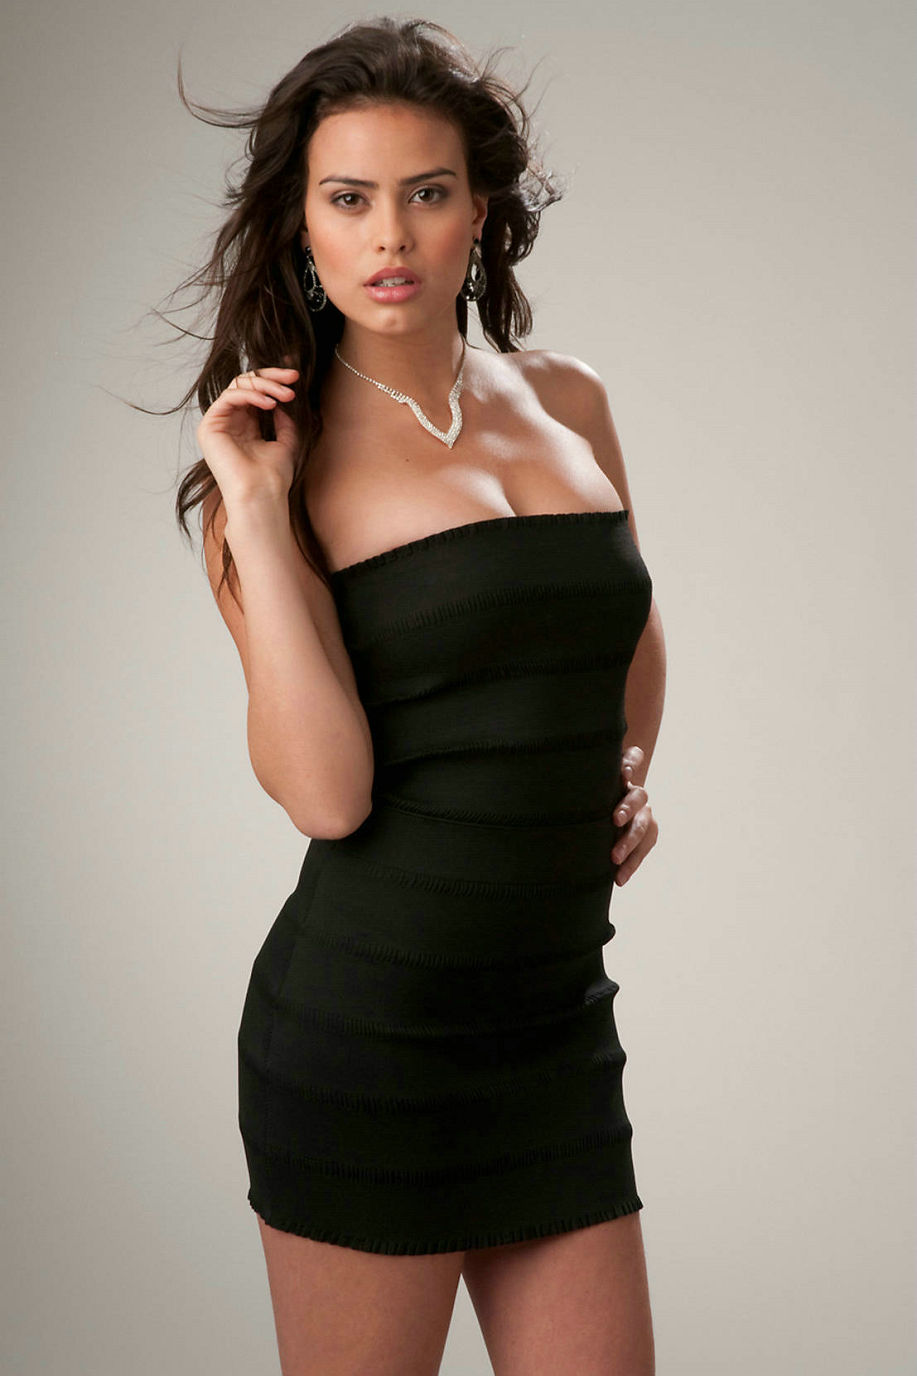 Black Mini Dress Picture Collection Dressed Up Girl